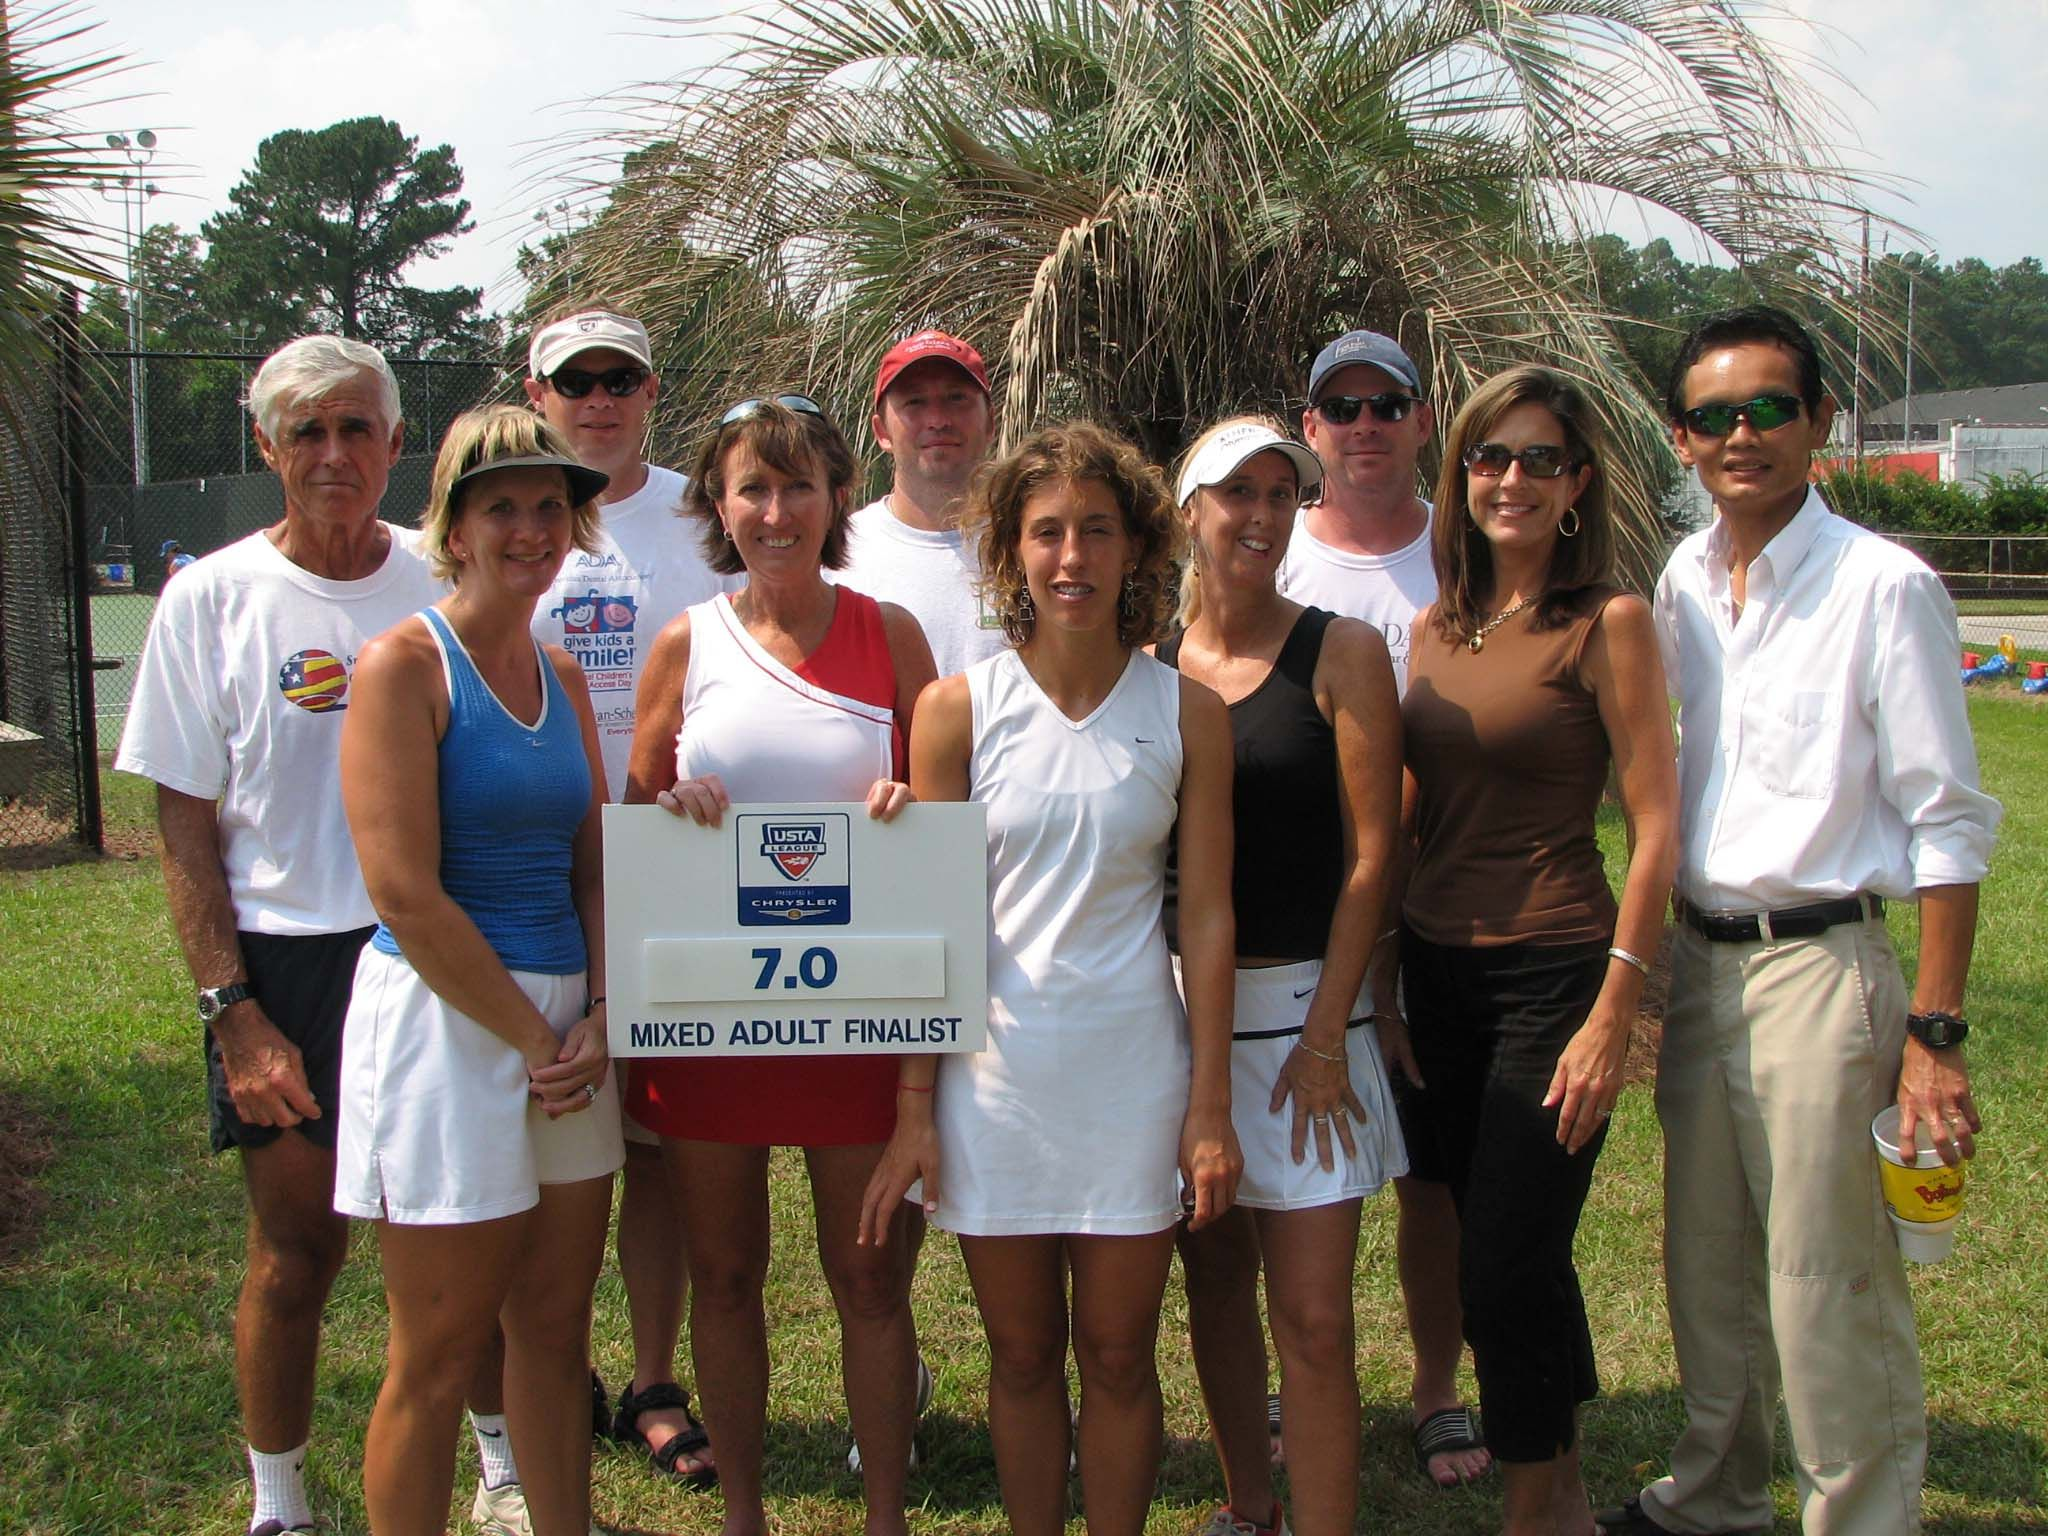 2006 Mixed 7.0 Adult Finalist